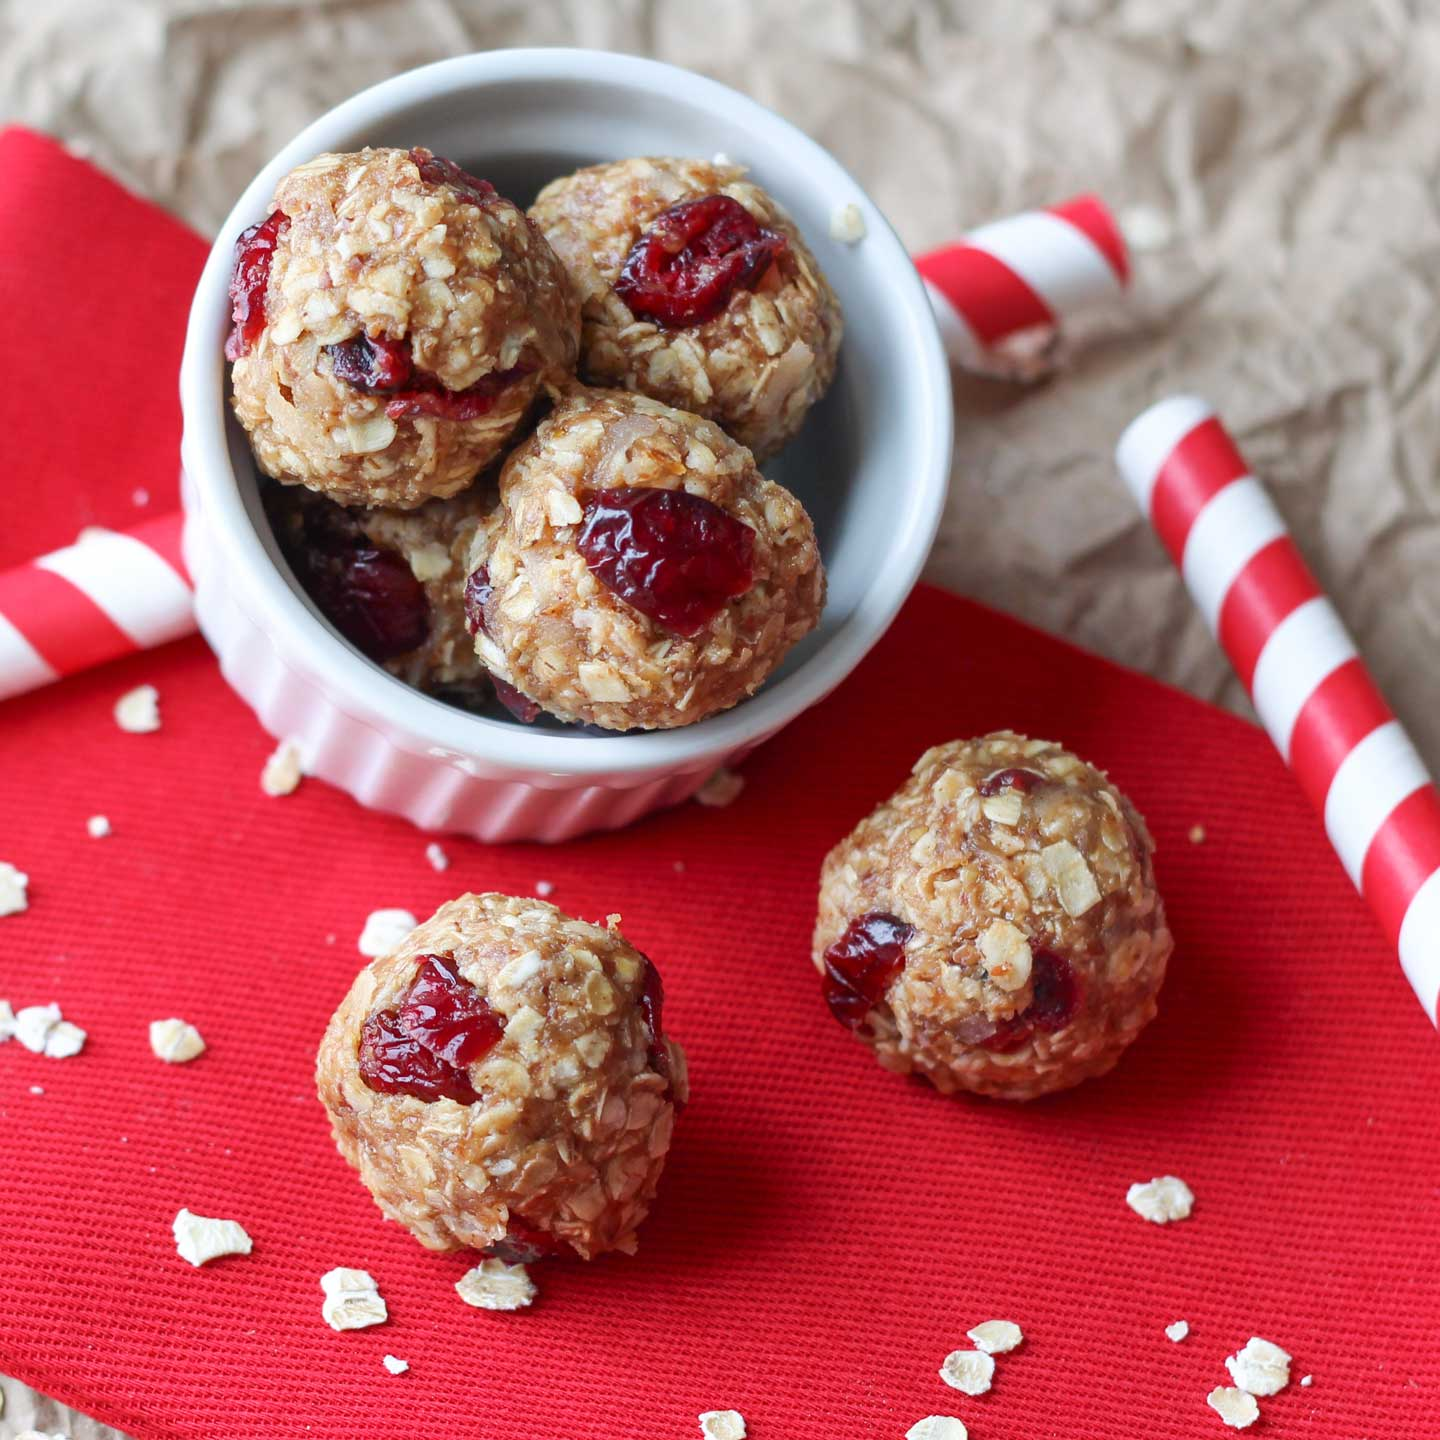 A little white bowl with 4 energy balls displayed, tilted on striped paper straws on red cloth, with 2 more balls in front.